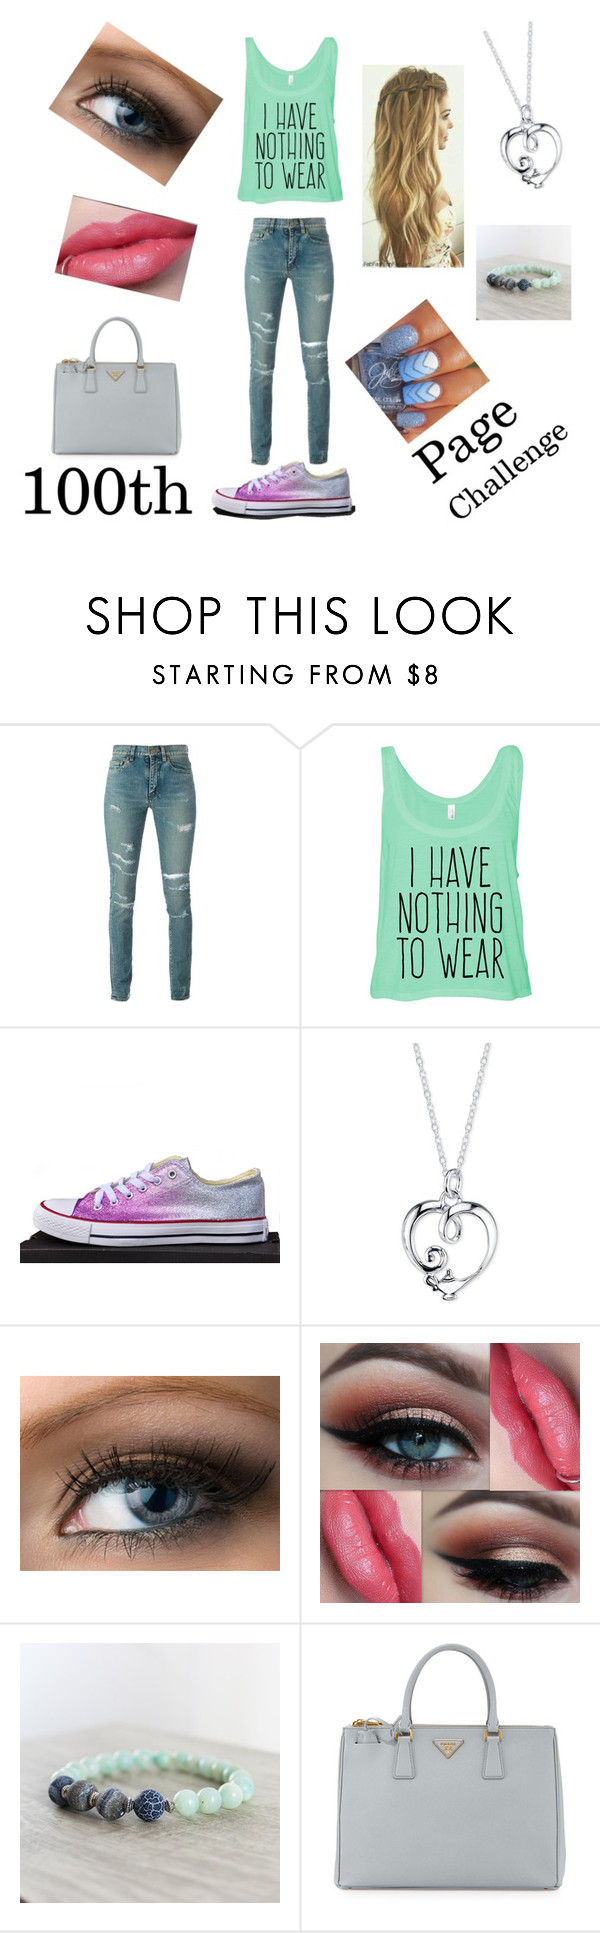 """Check The Description !! PLEASE!!"" by supershelbs ❤ liked on Polyvore featuring Yves Saint Laurent, Converse, Disney, Jenny Packham and Prada"